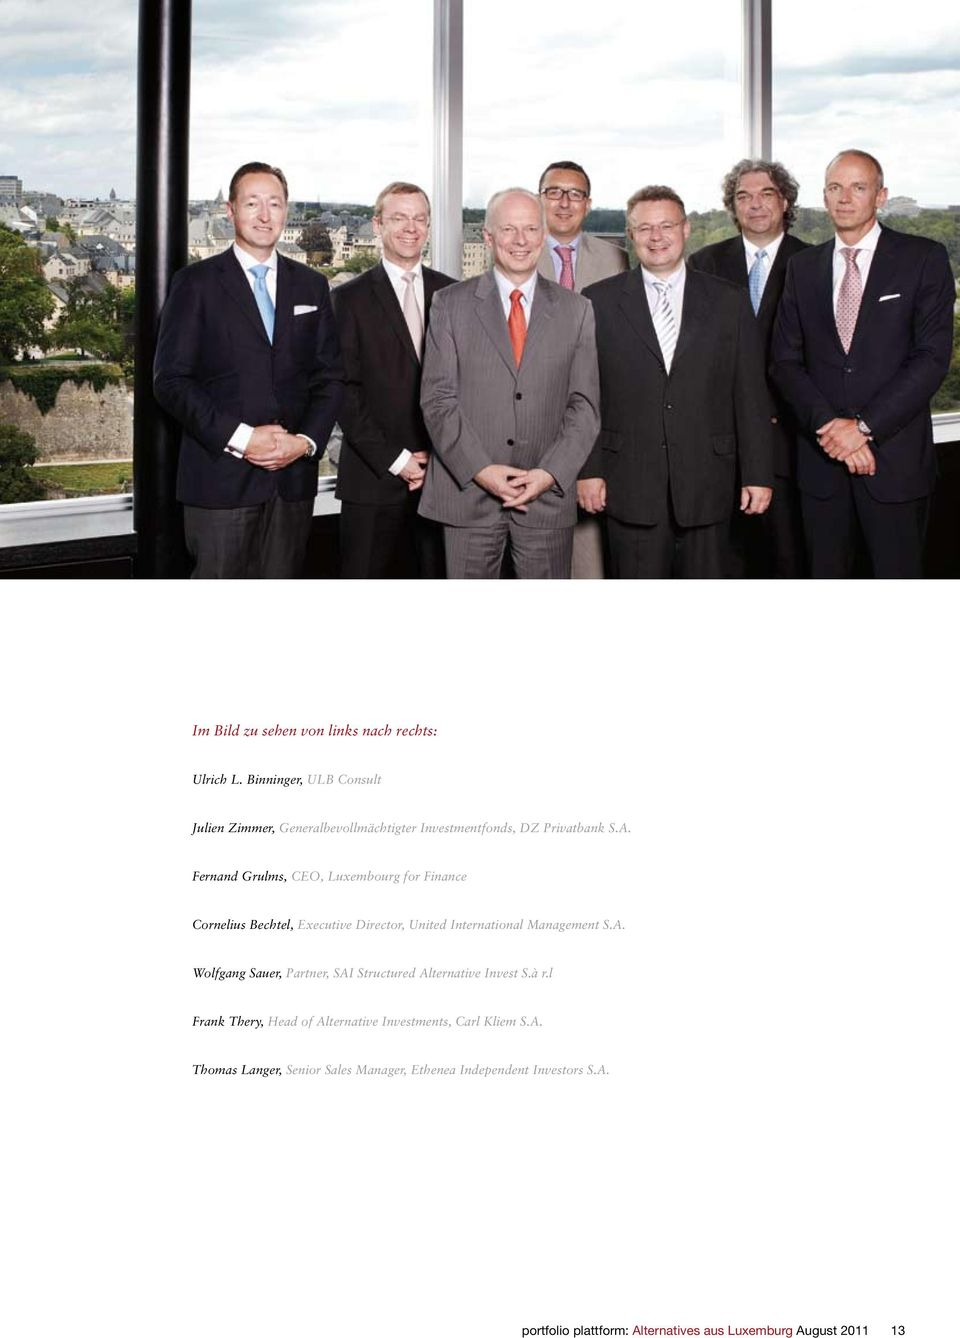 Fernand Grulms, CEO, Luxembourg for Finance Cornelius Bechtel, Executive Director, United International Management S.A.